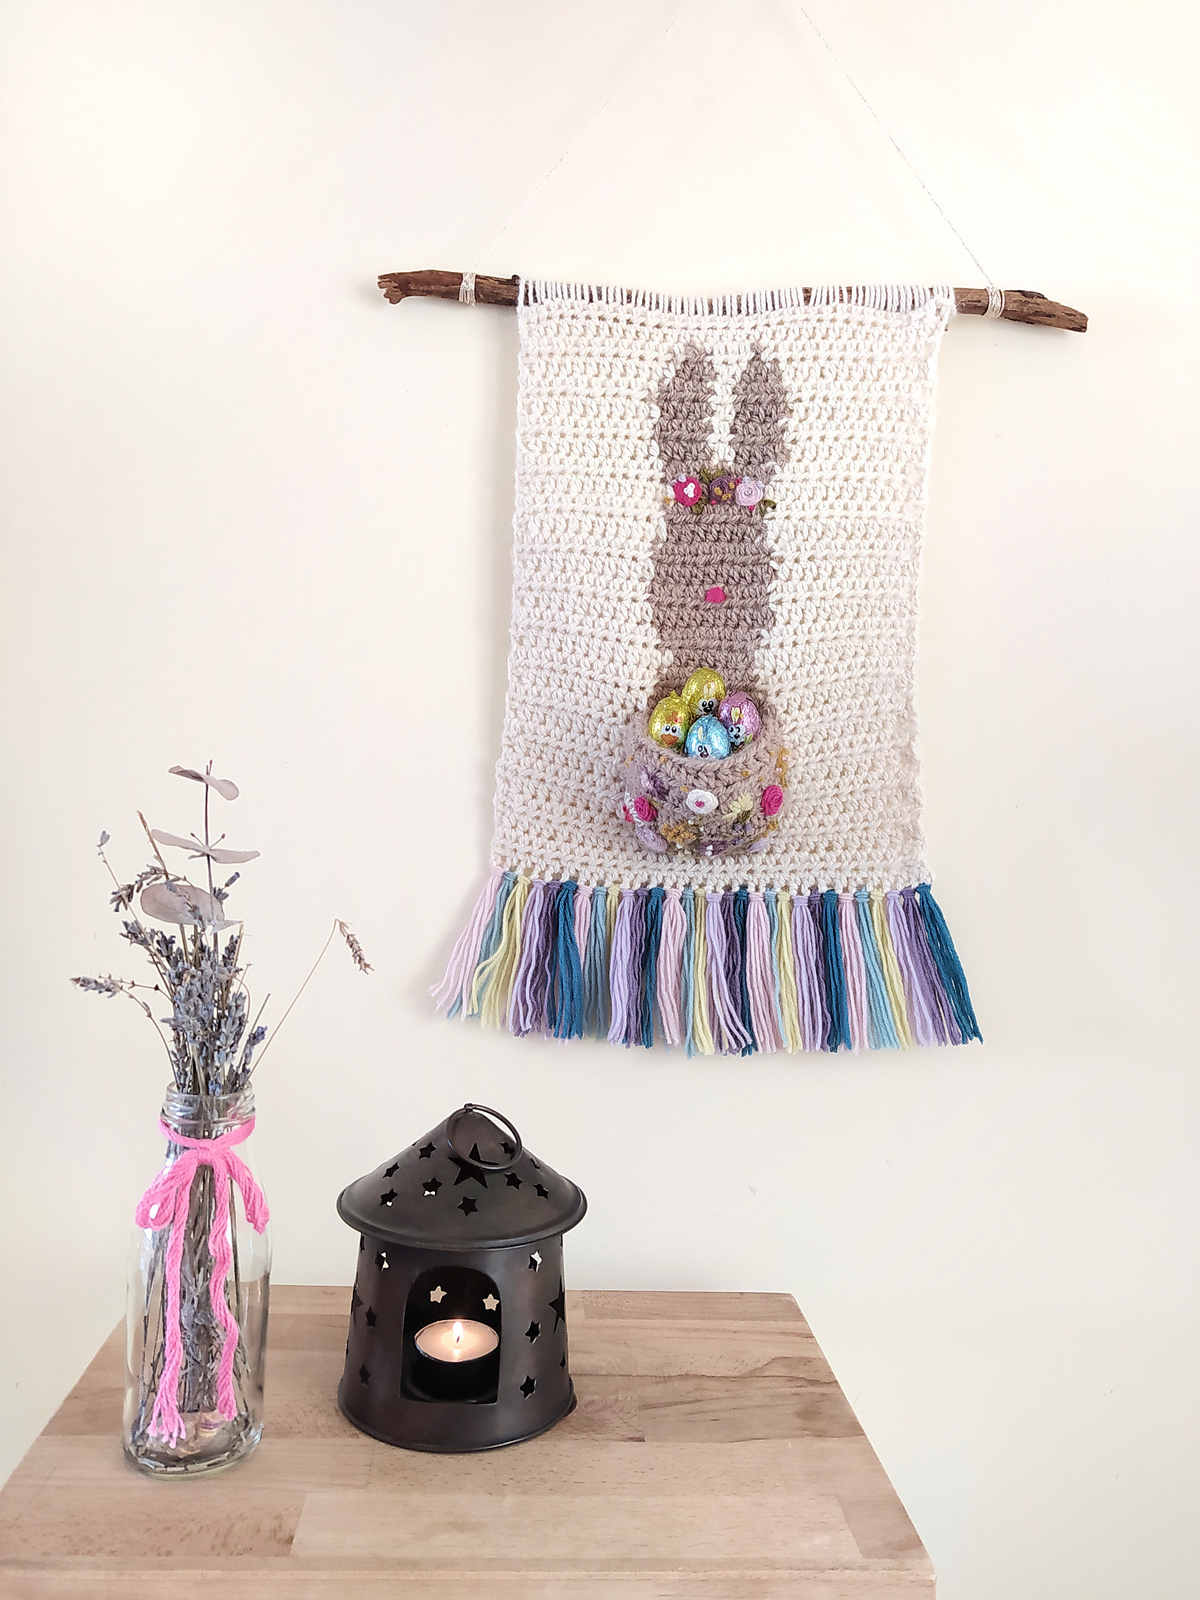 Crochet a Funny Bunny Wall Hanging With a Free Pattern From Carolina Damonte ... Sorry, Chocolate Eggs Not Included!